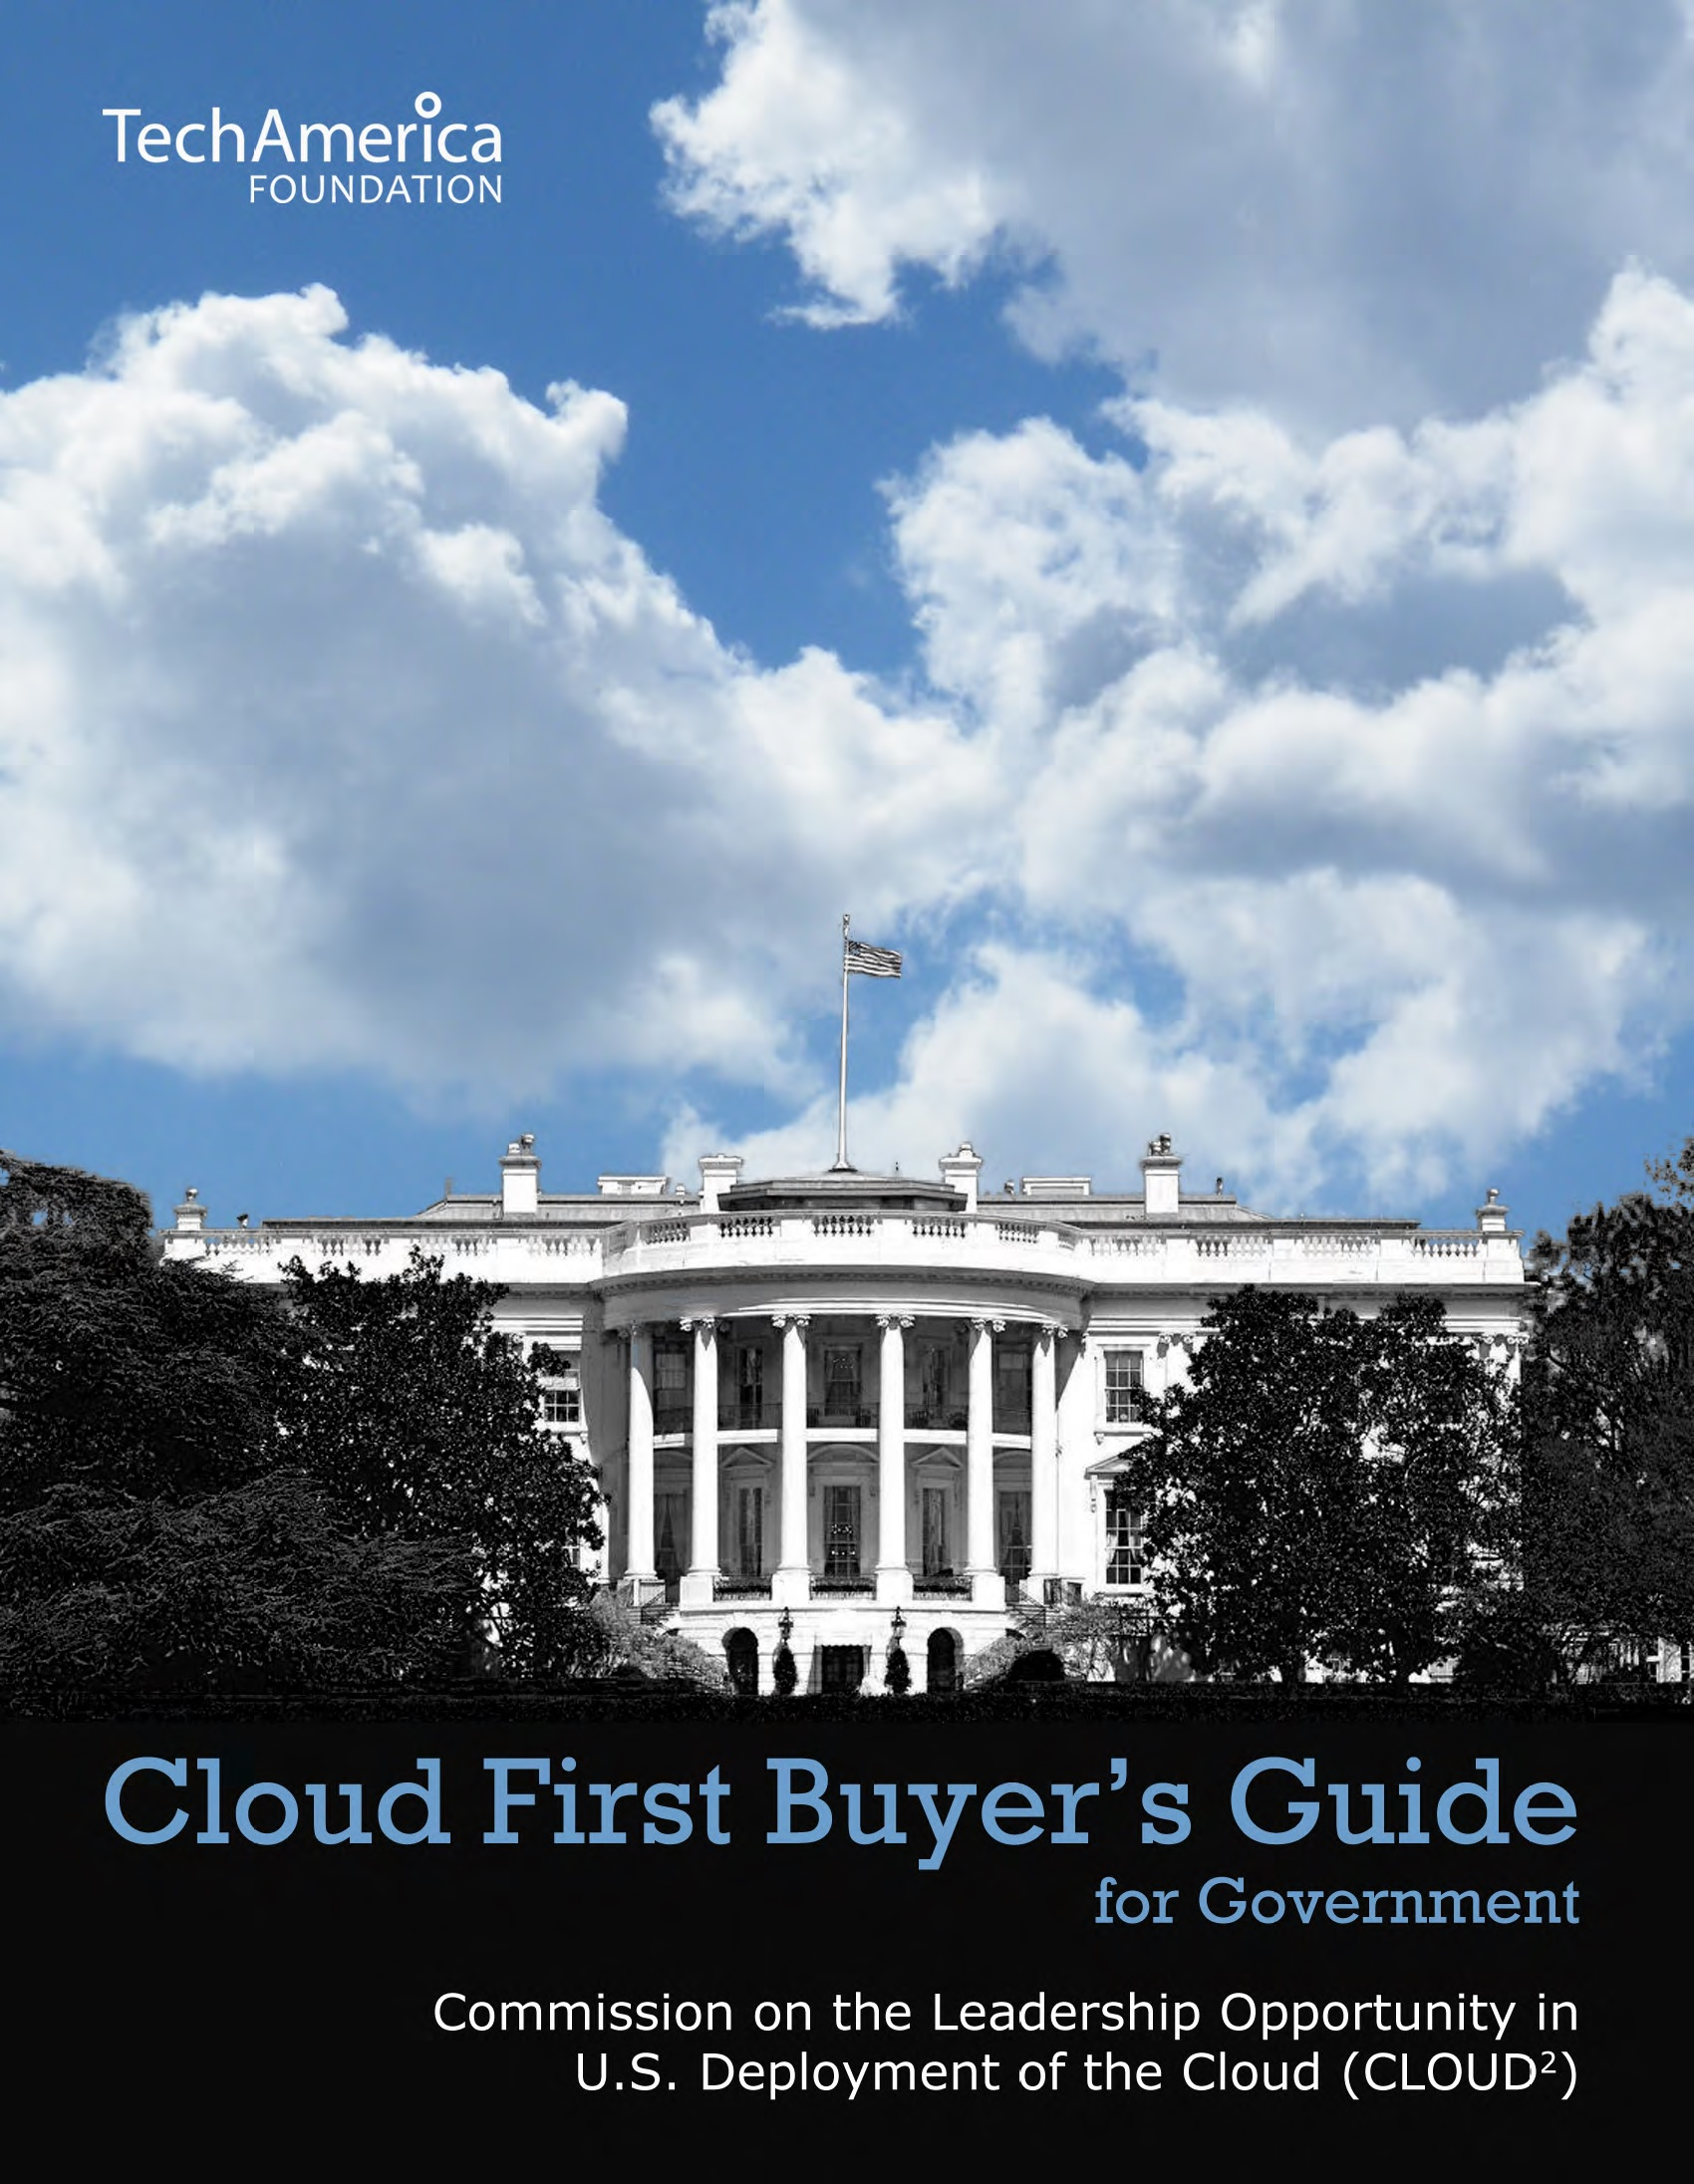 Cloud First Buyer's Guide for Government